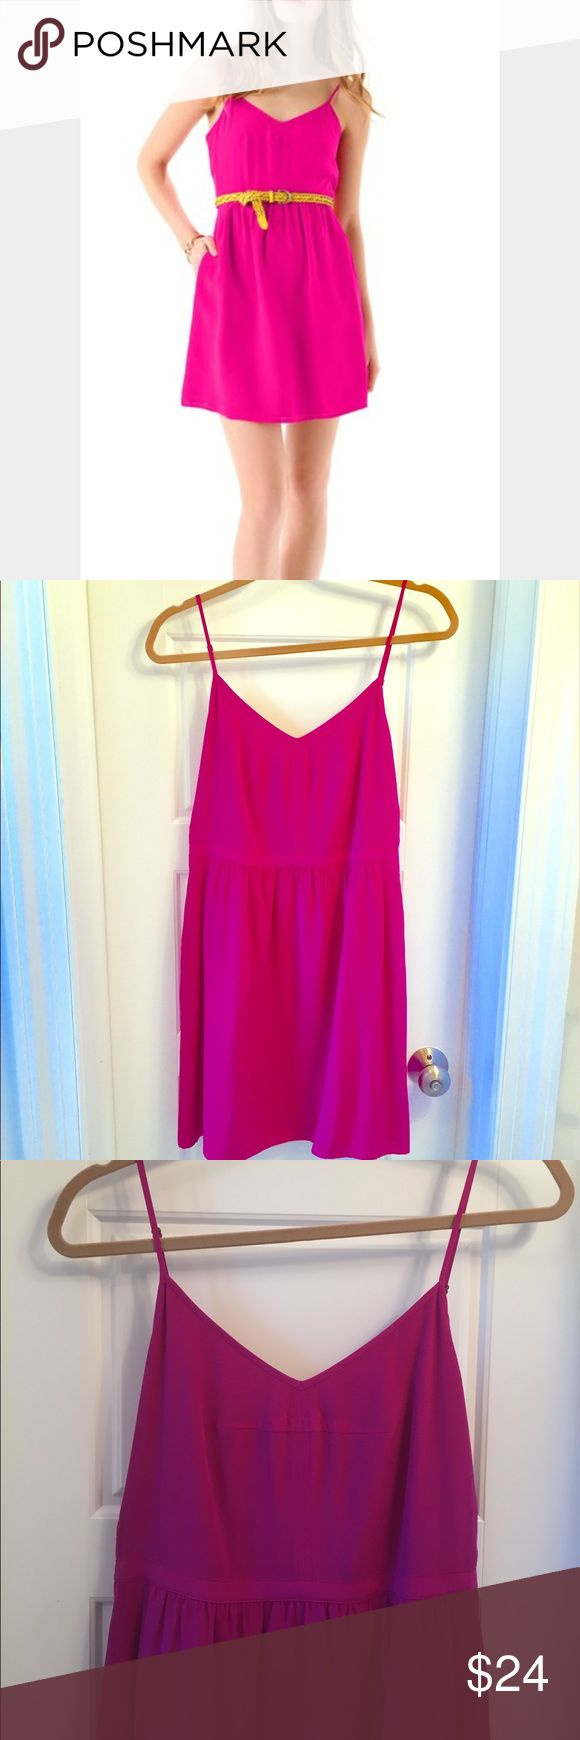 Madewell silk cami dress Great summer dress! In perfect condition - non smoking, no pet home. Measures 26.5 inches from the middle of the front top to hem. Madewell Dresses